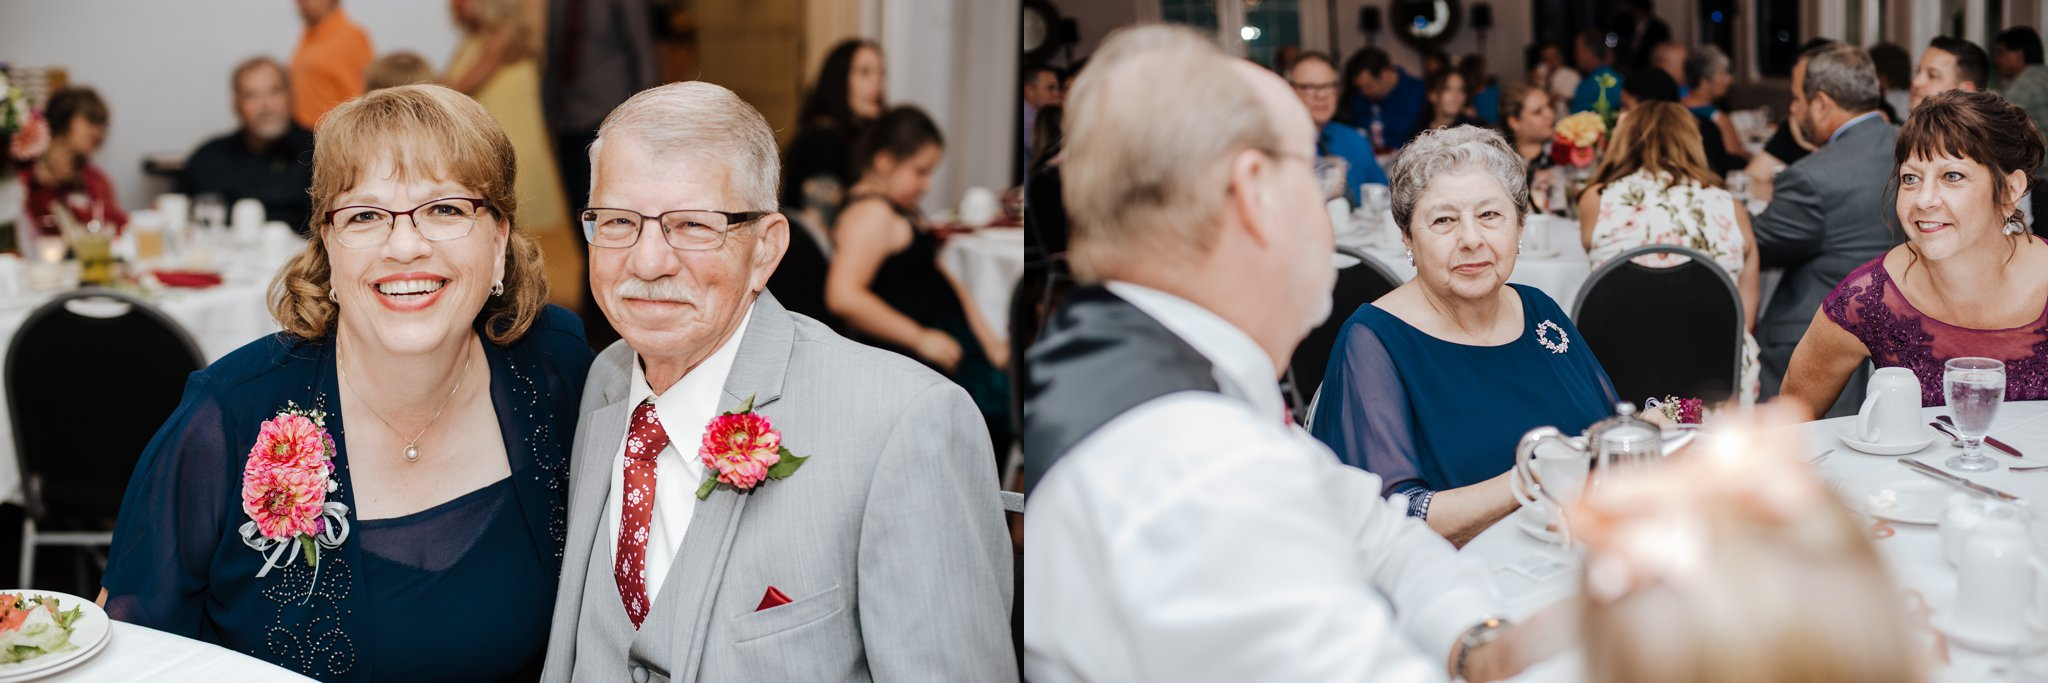 Wisconsin Wedding Photographer_6498.jpg